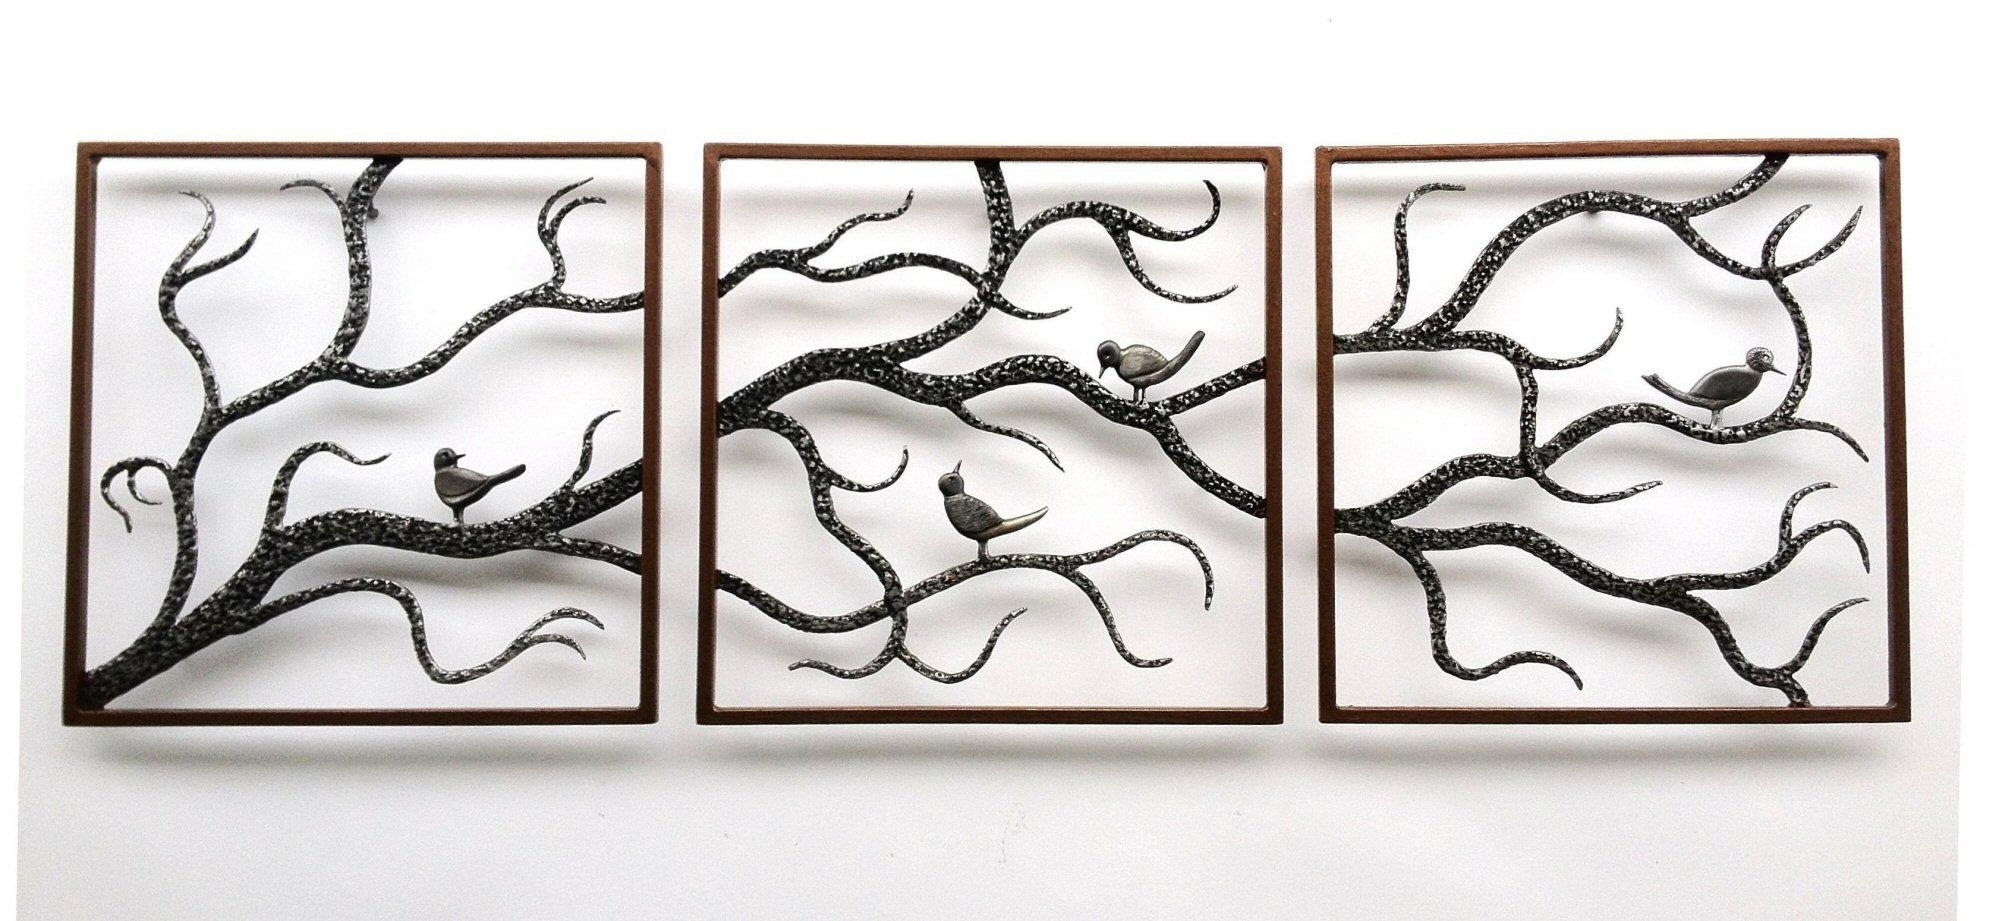 Wall Art Metal Decor Throughout Metal Tree Wall Art Sculpture (Image 18 of 20)